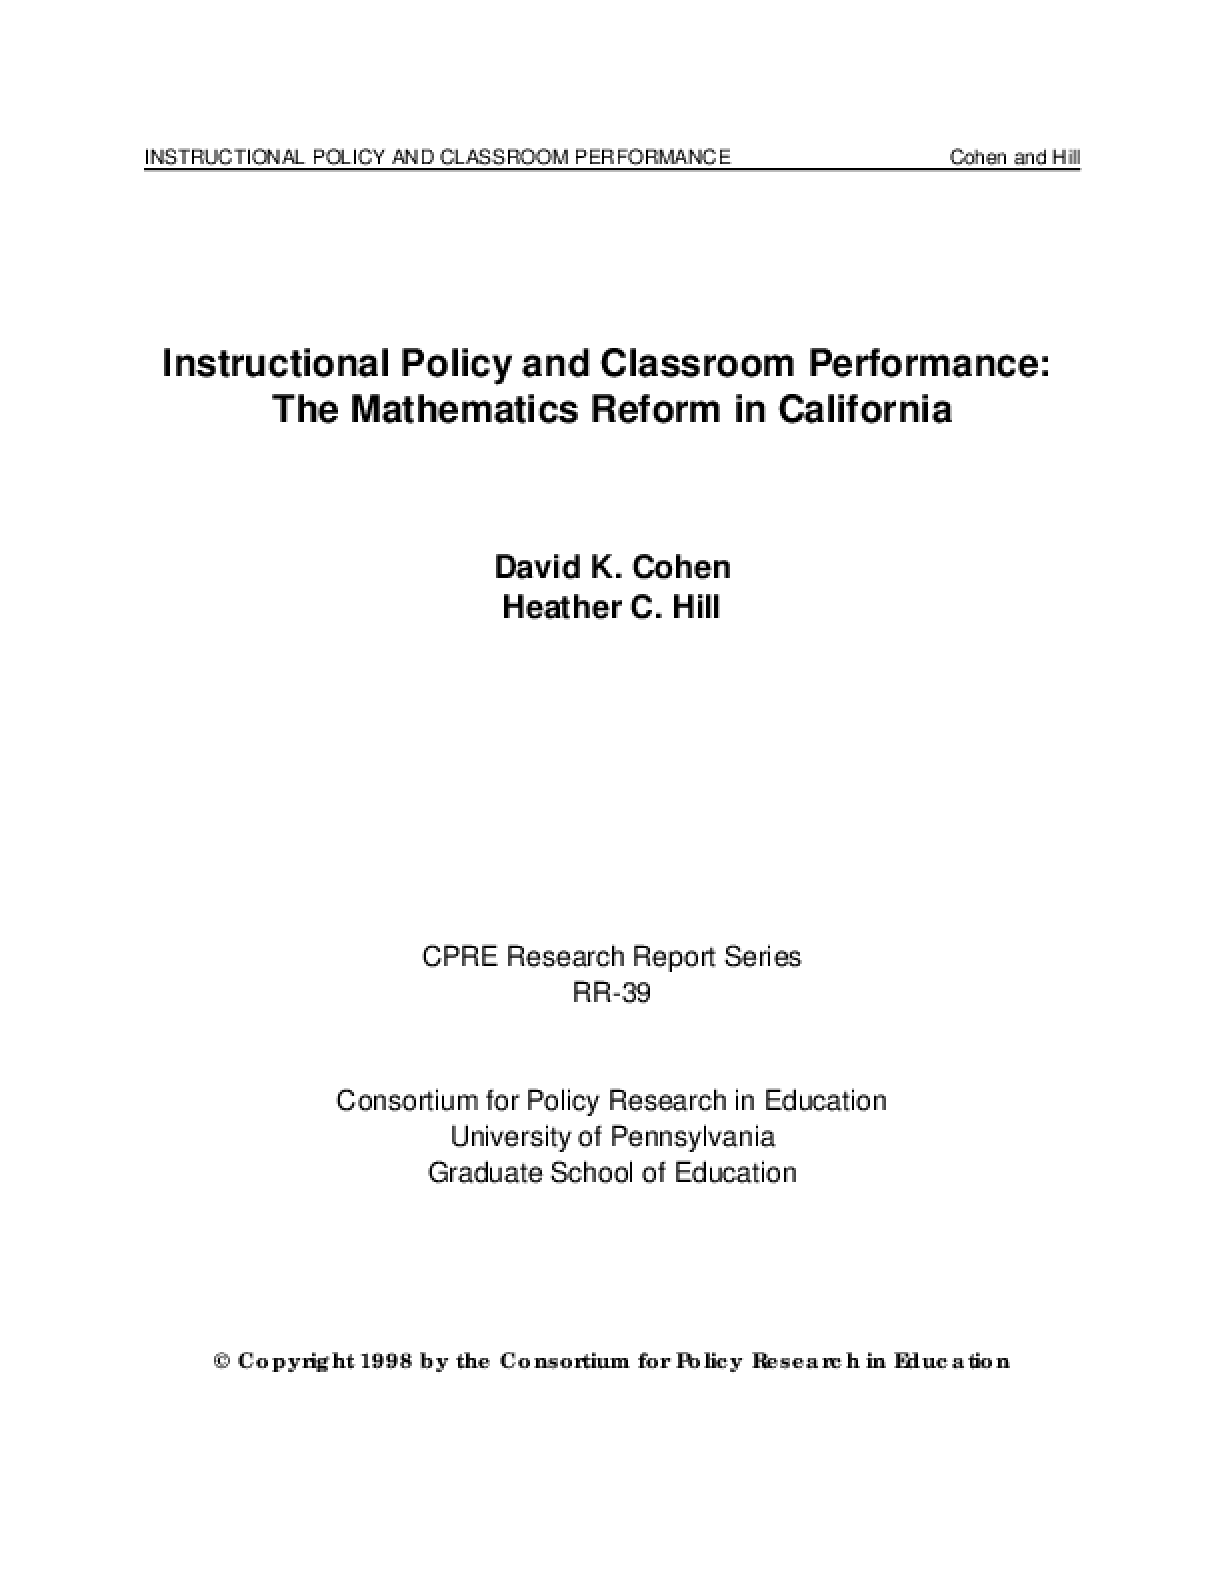 Instructional Policy and Classroom Performance: The Mathematics Reform in California